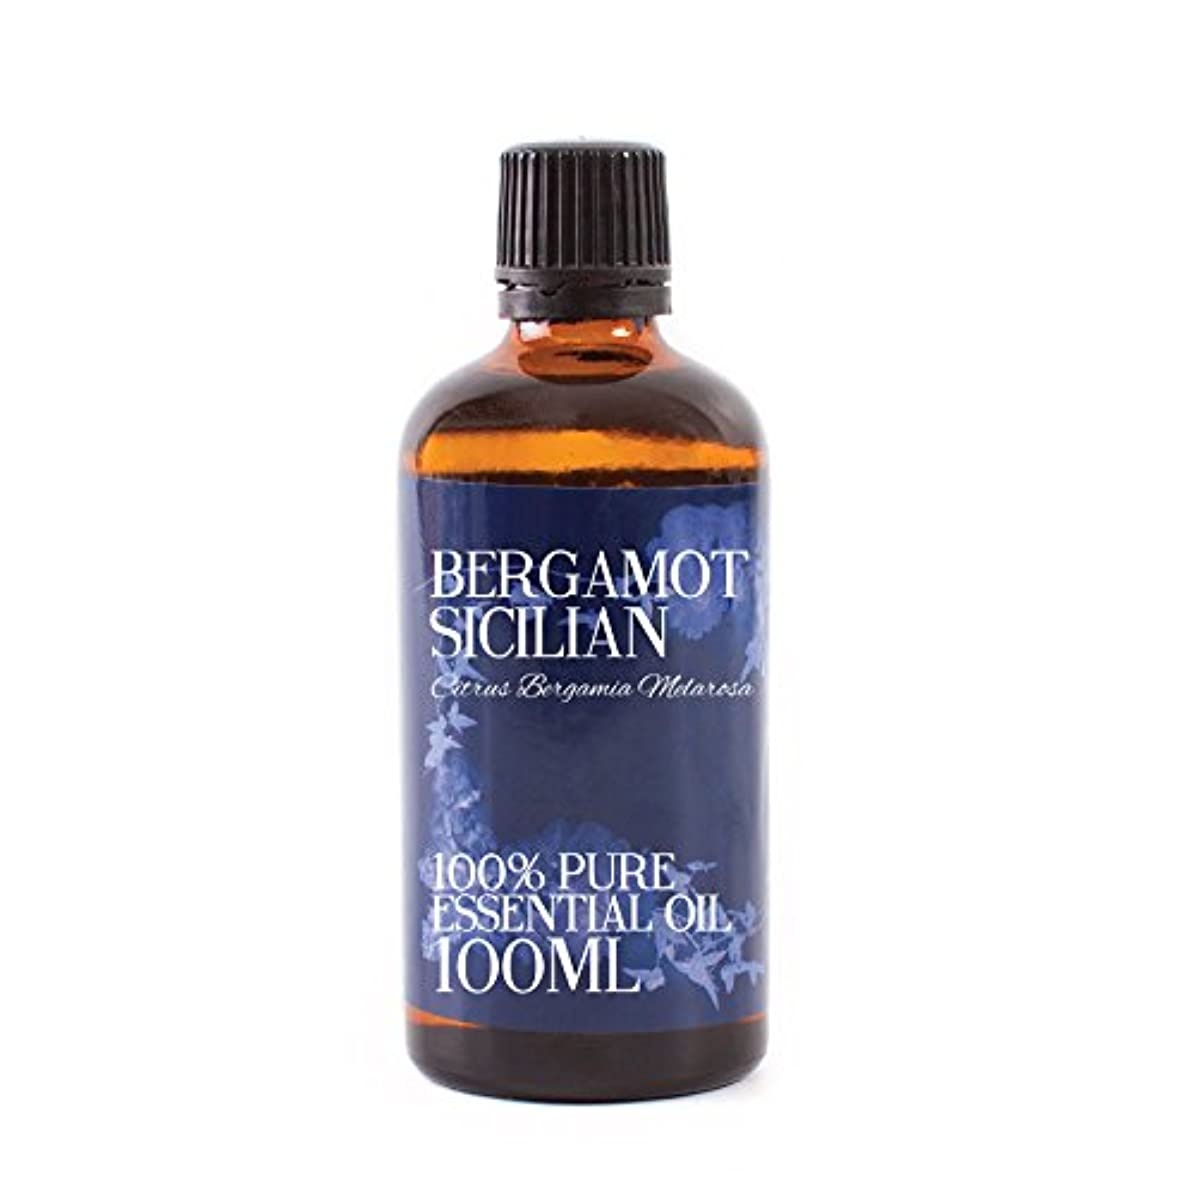 器用加速度ナンセンスMystic Moments | Bergamot Sicilian Essential Oil - 100ml - 100% Pure